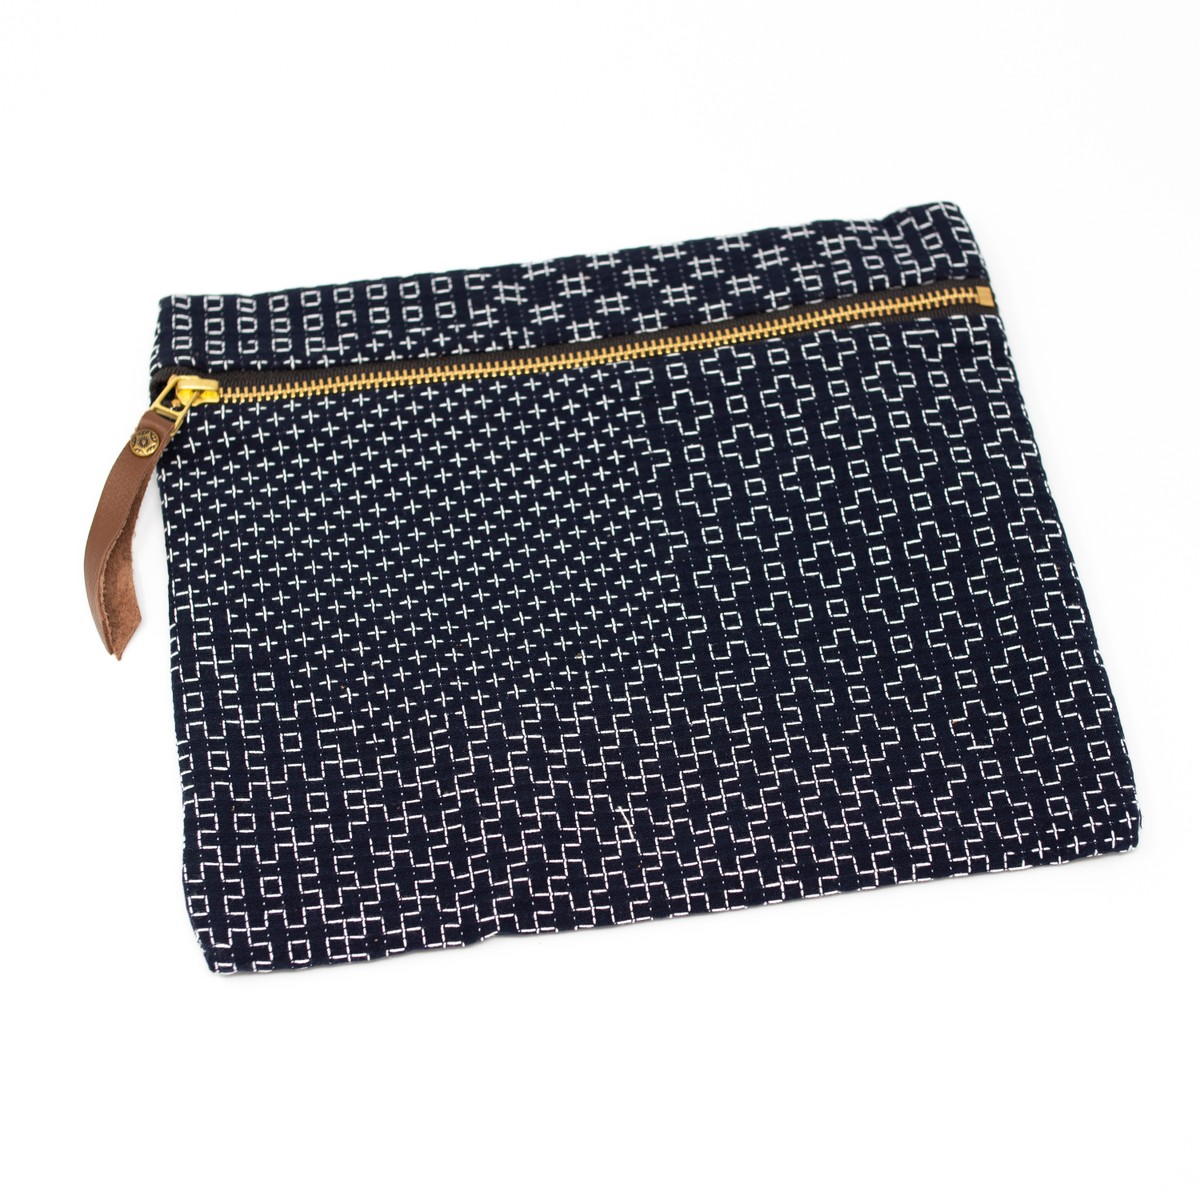 Photo of Sashiko Flat Bag